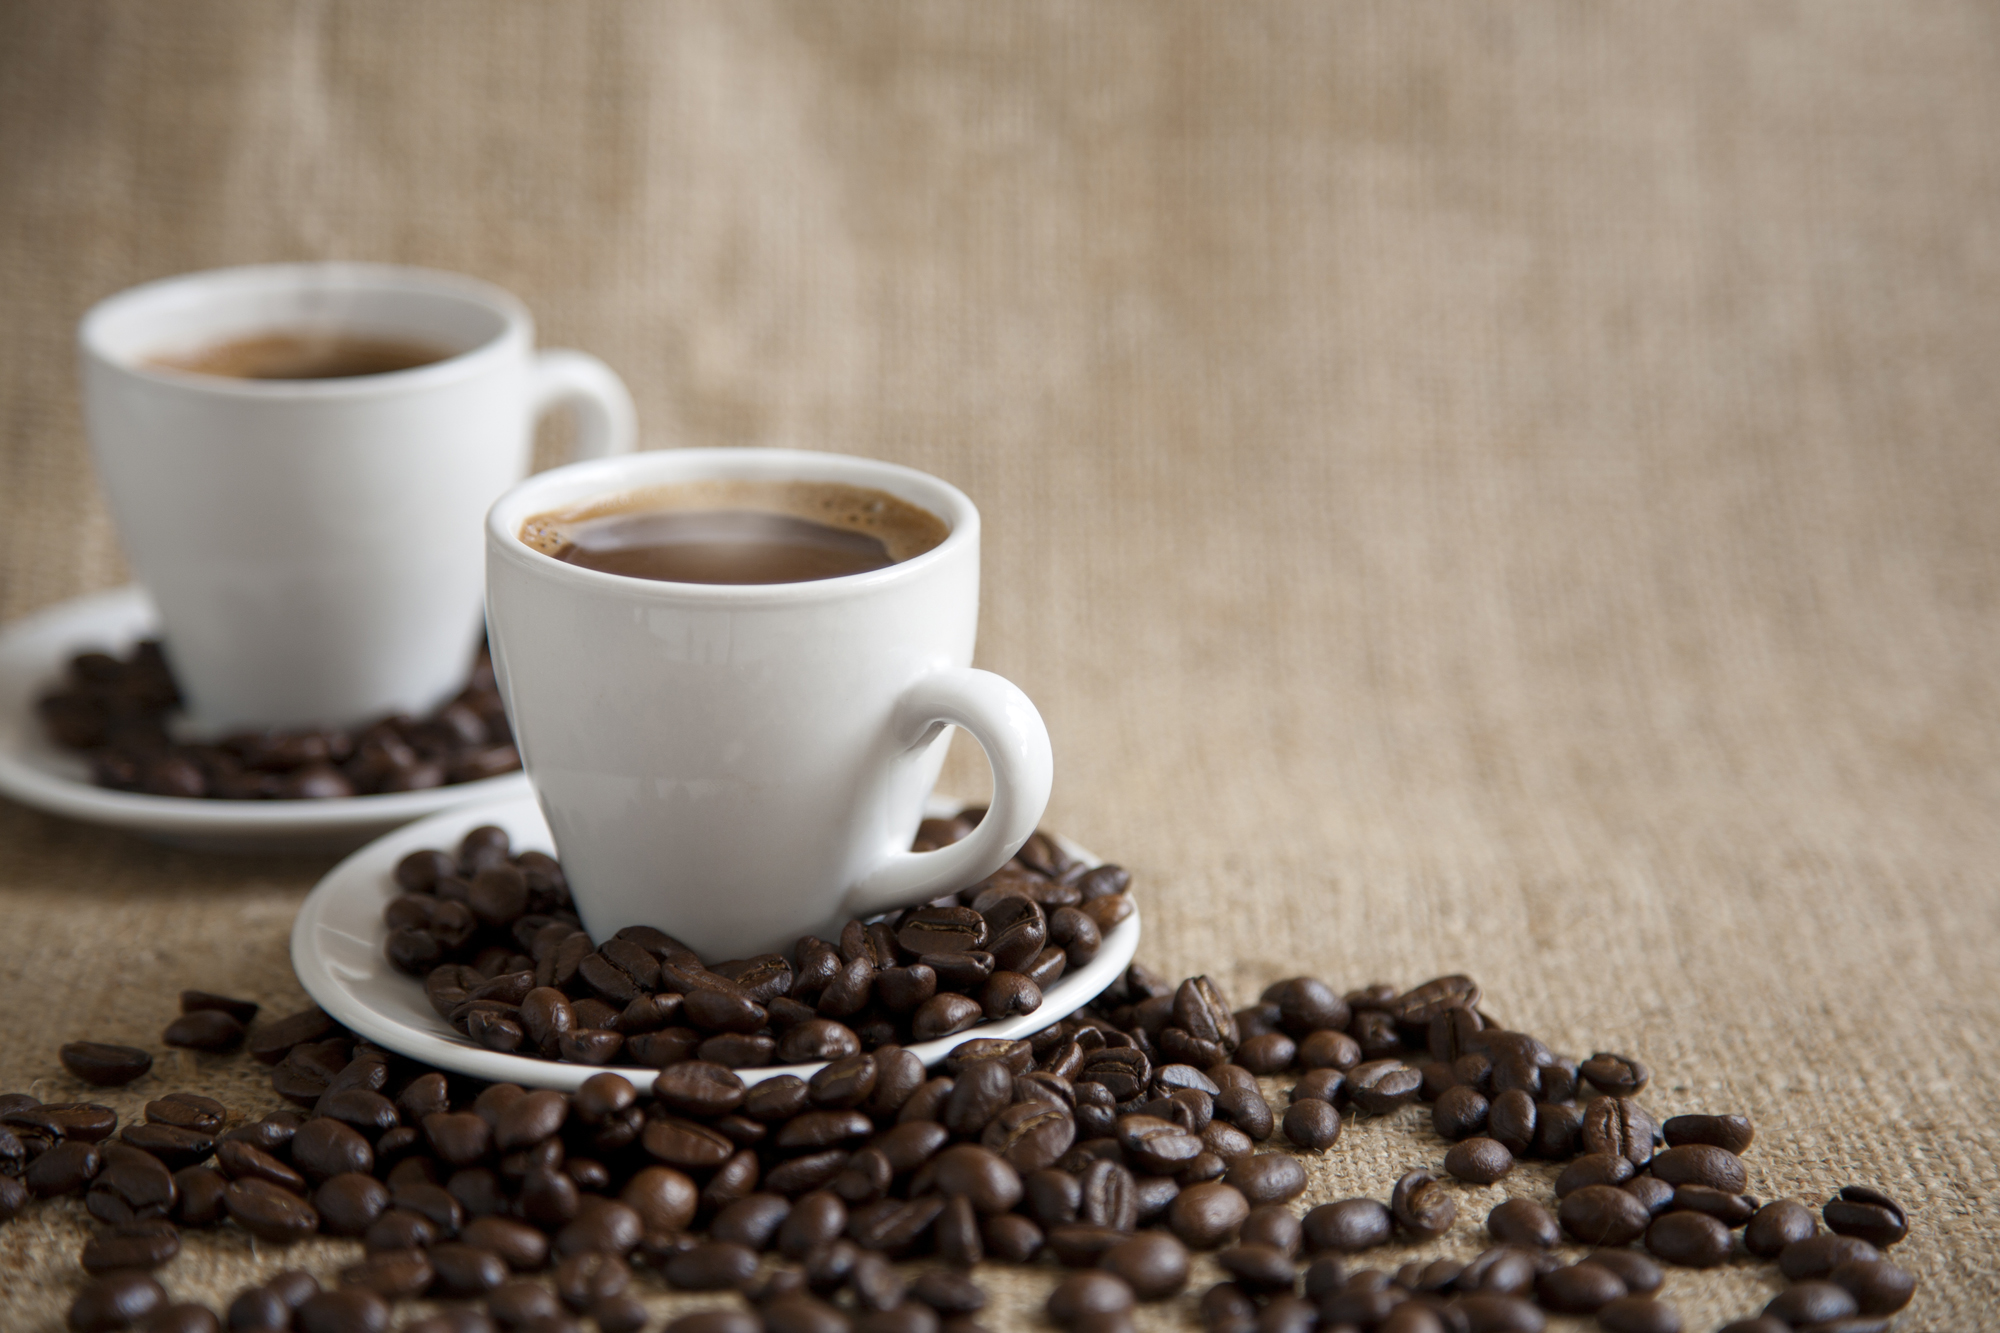 Coffee cups and saucers with coffee beans